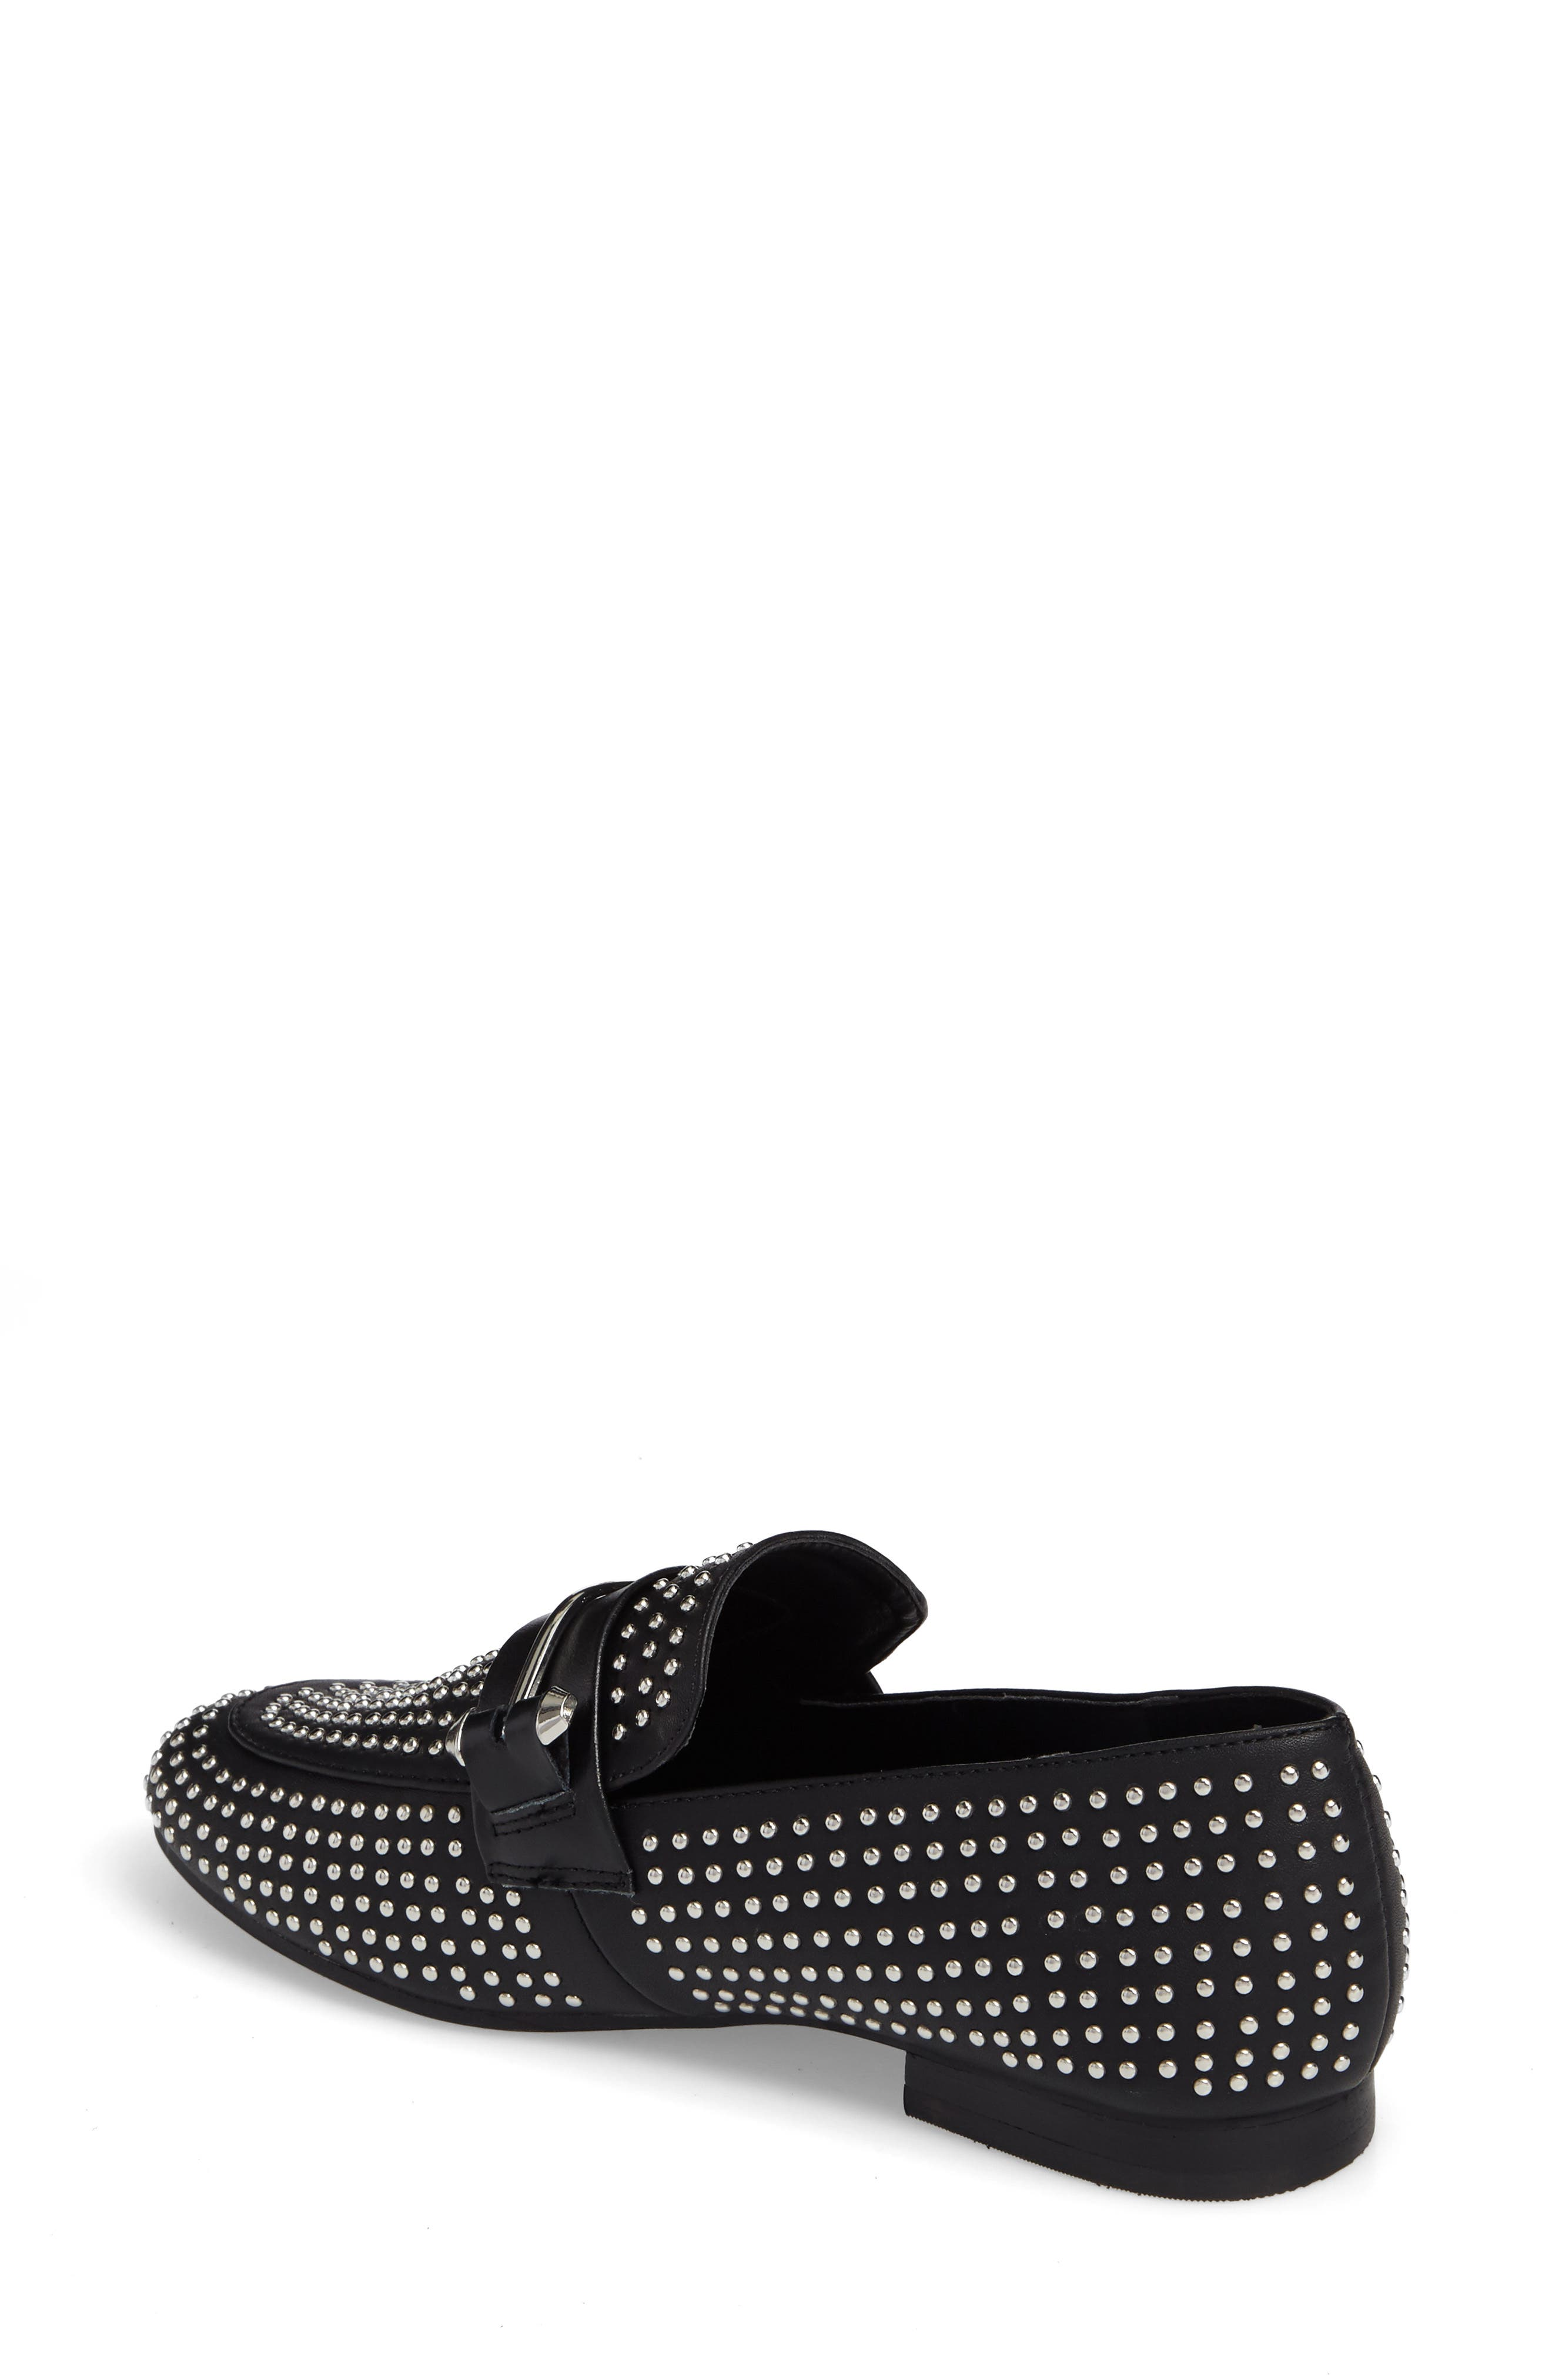 Kast Studded Loafer,                             Alternate thumbnail 2, color,                             001